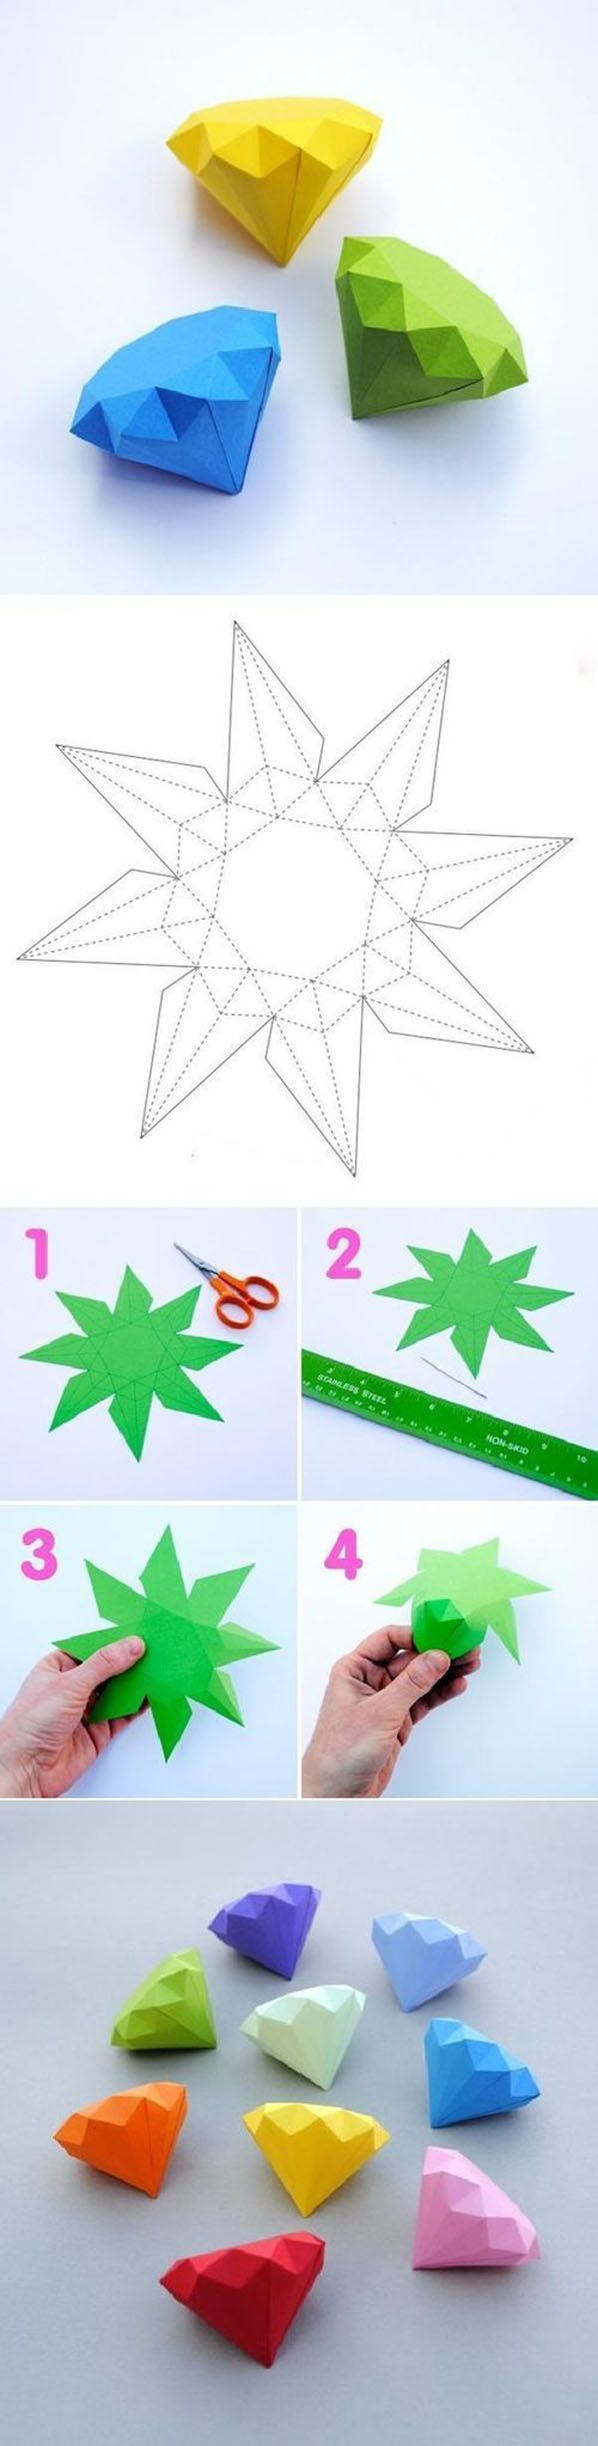 Beautiful Paper Craft | DIY  Crafts Tutorials Dw it tells you how make a paper diamond